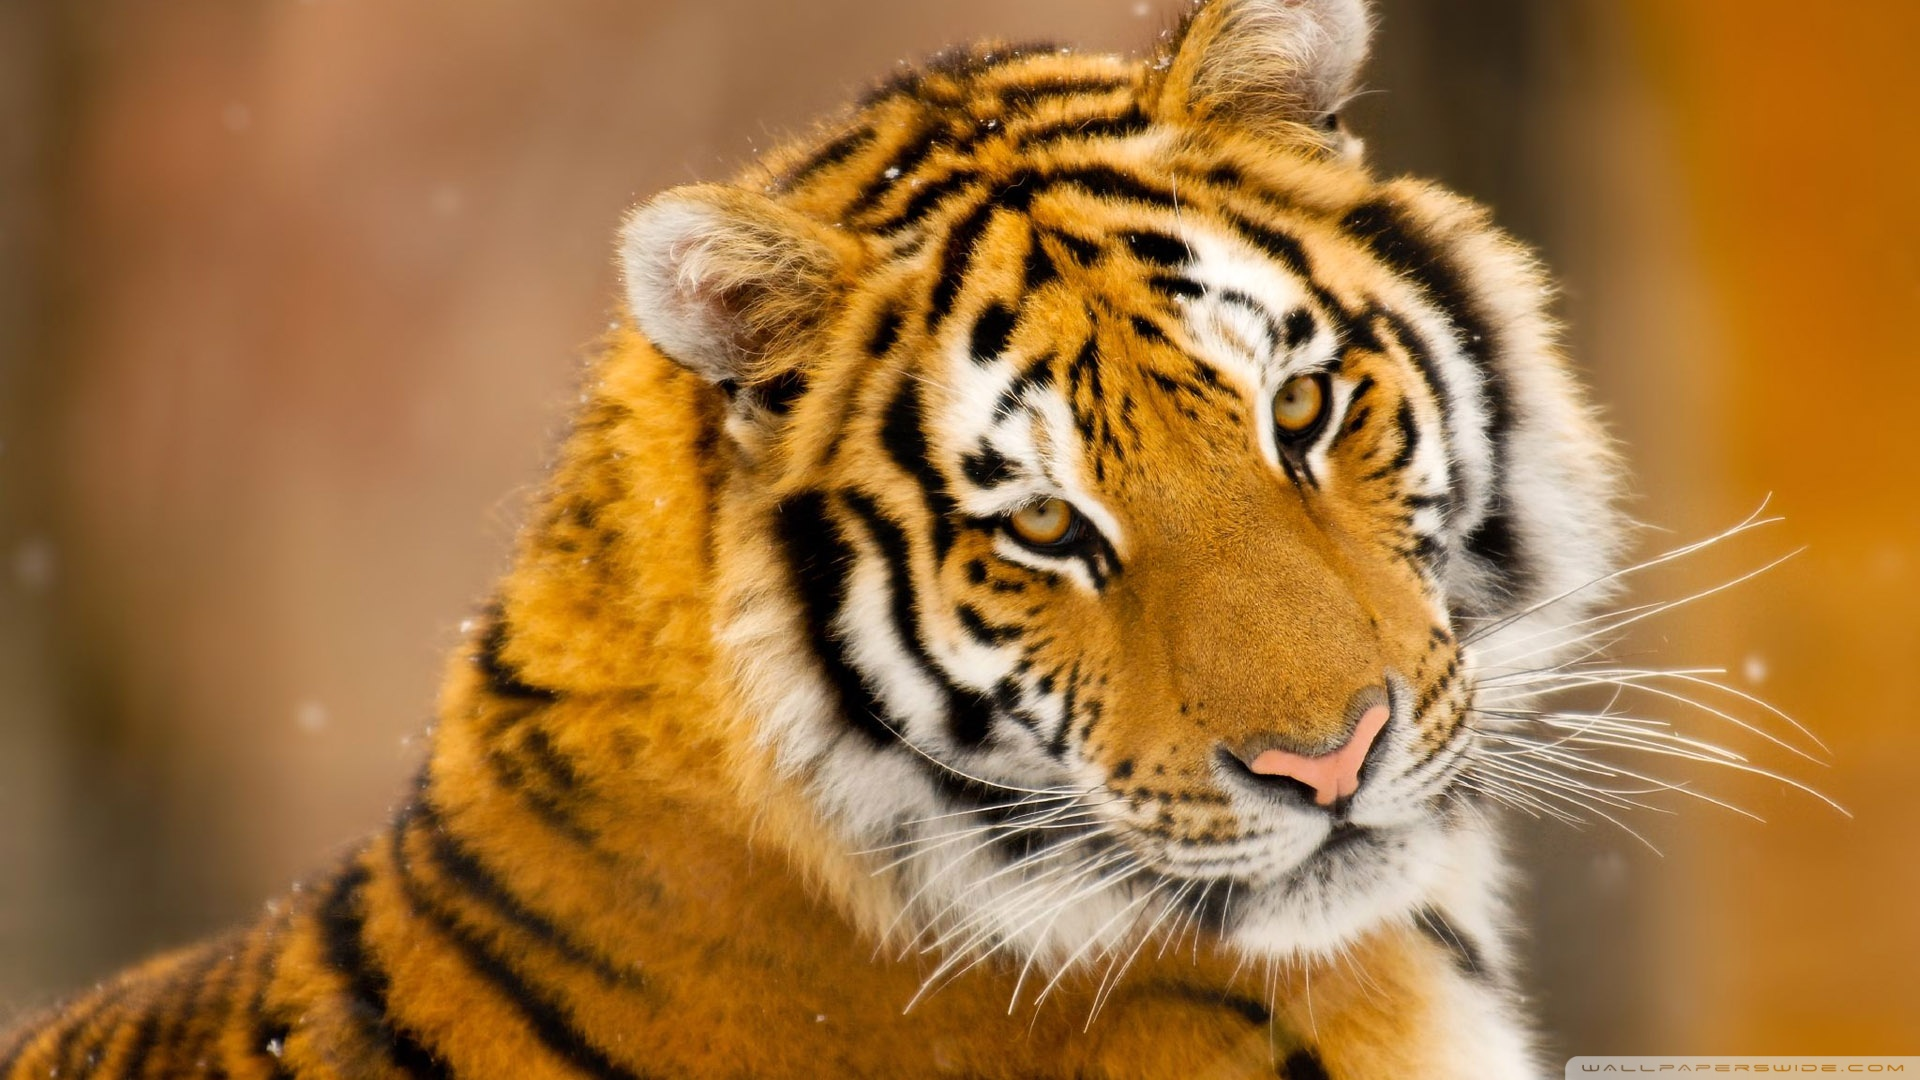 Siberian tiger wallpapers pictures images - Animal 1920x1080 ...